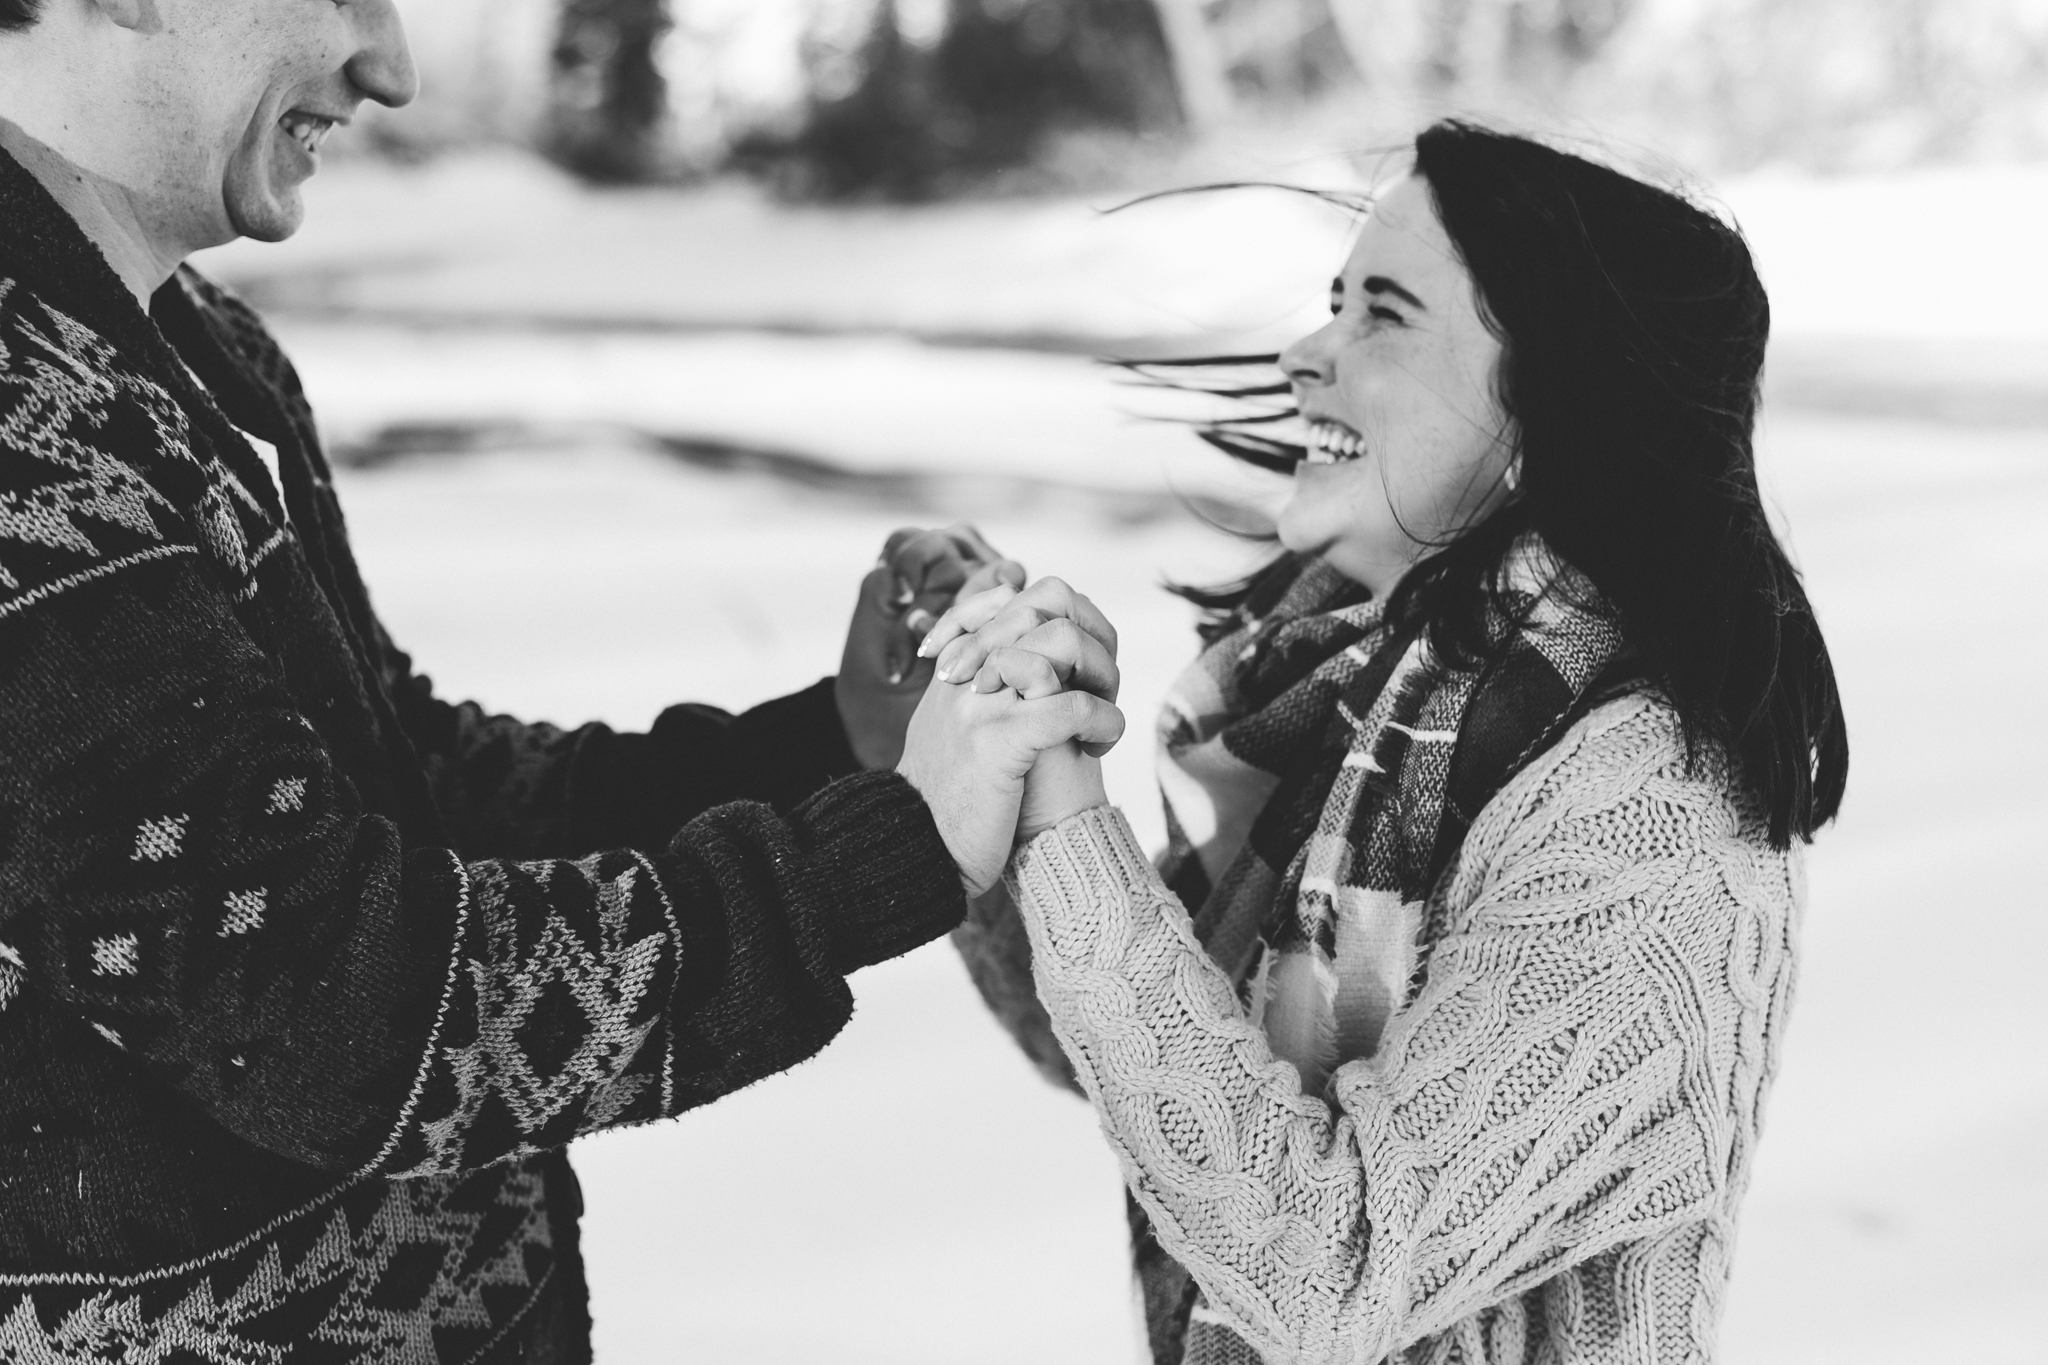 waterton-engagement-photographer-love-and-be-loved-photography-lethbridge-mike-brenna-engaged-picture-image-photo-21.jpg